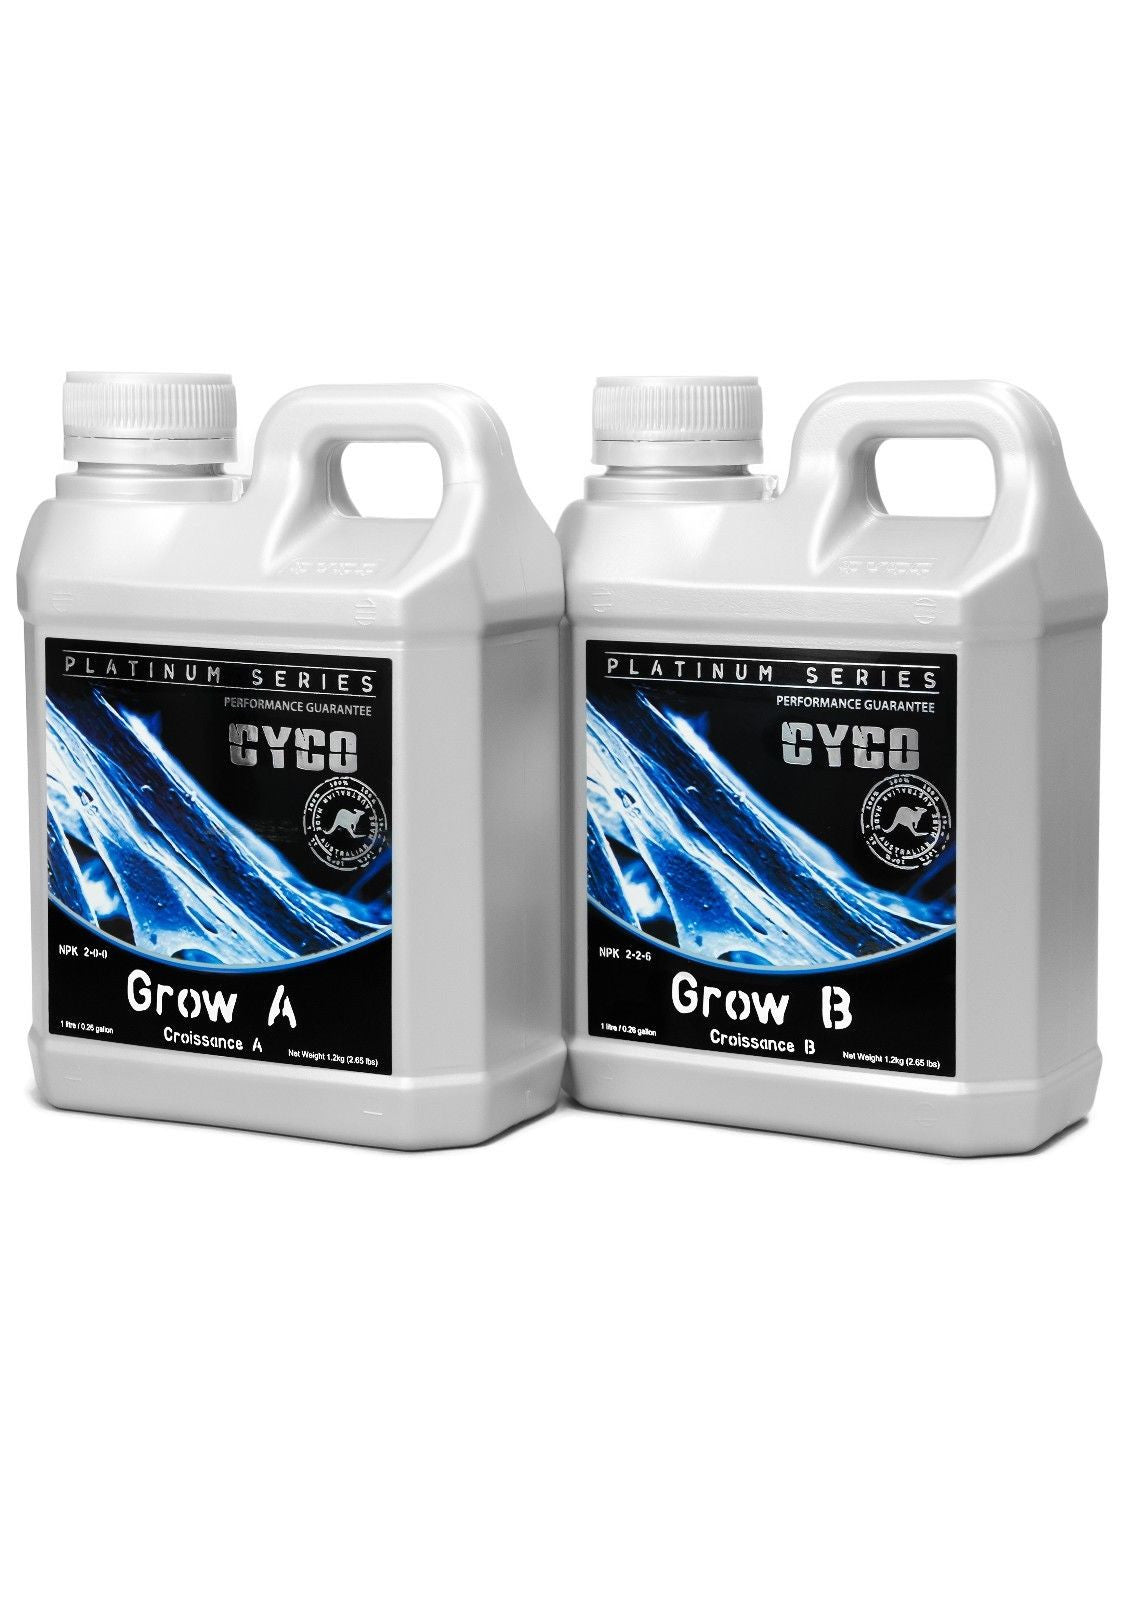 CYCO Platinum Series Hydroponics Nutrients 1L, 5L Grow A+B Bloom, Flower, Swell